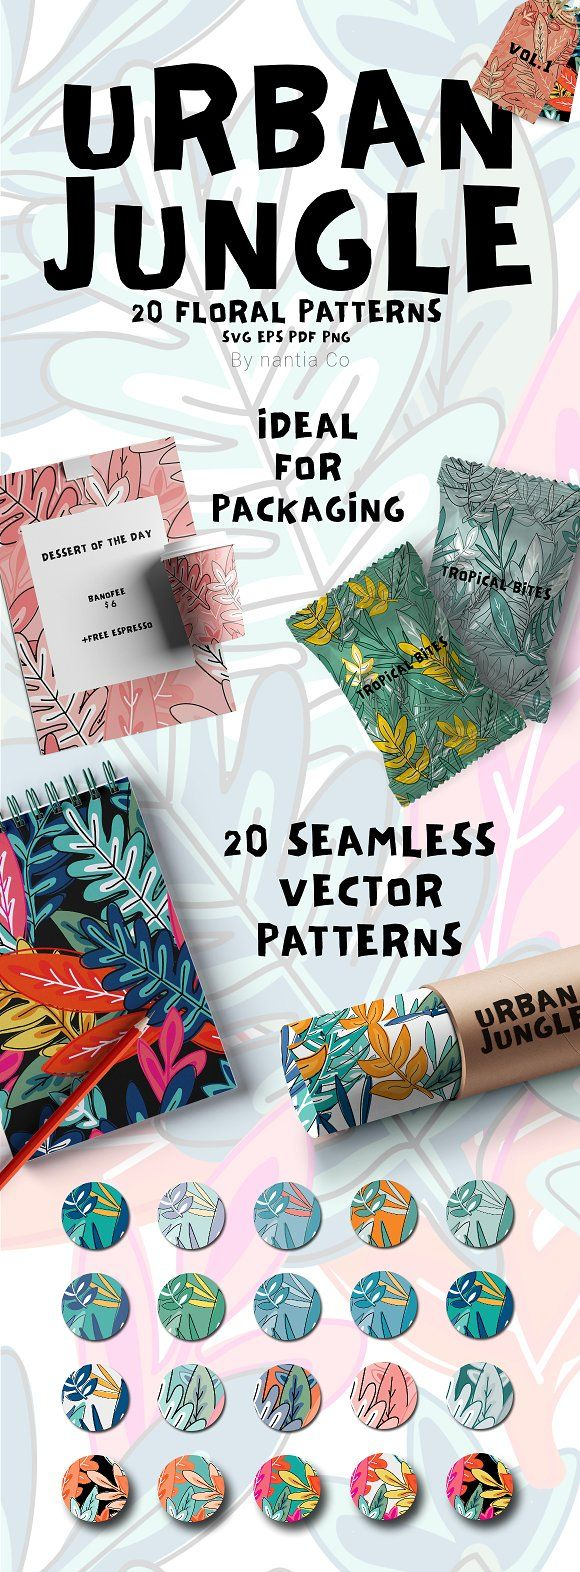 20 Urban Jungle Pattern Vol.1 by nantia on @creativemarket Ideal for fashion and interior design textiles. This floral pattern can be used on graphic design packaging projects.